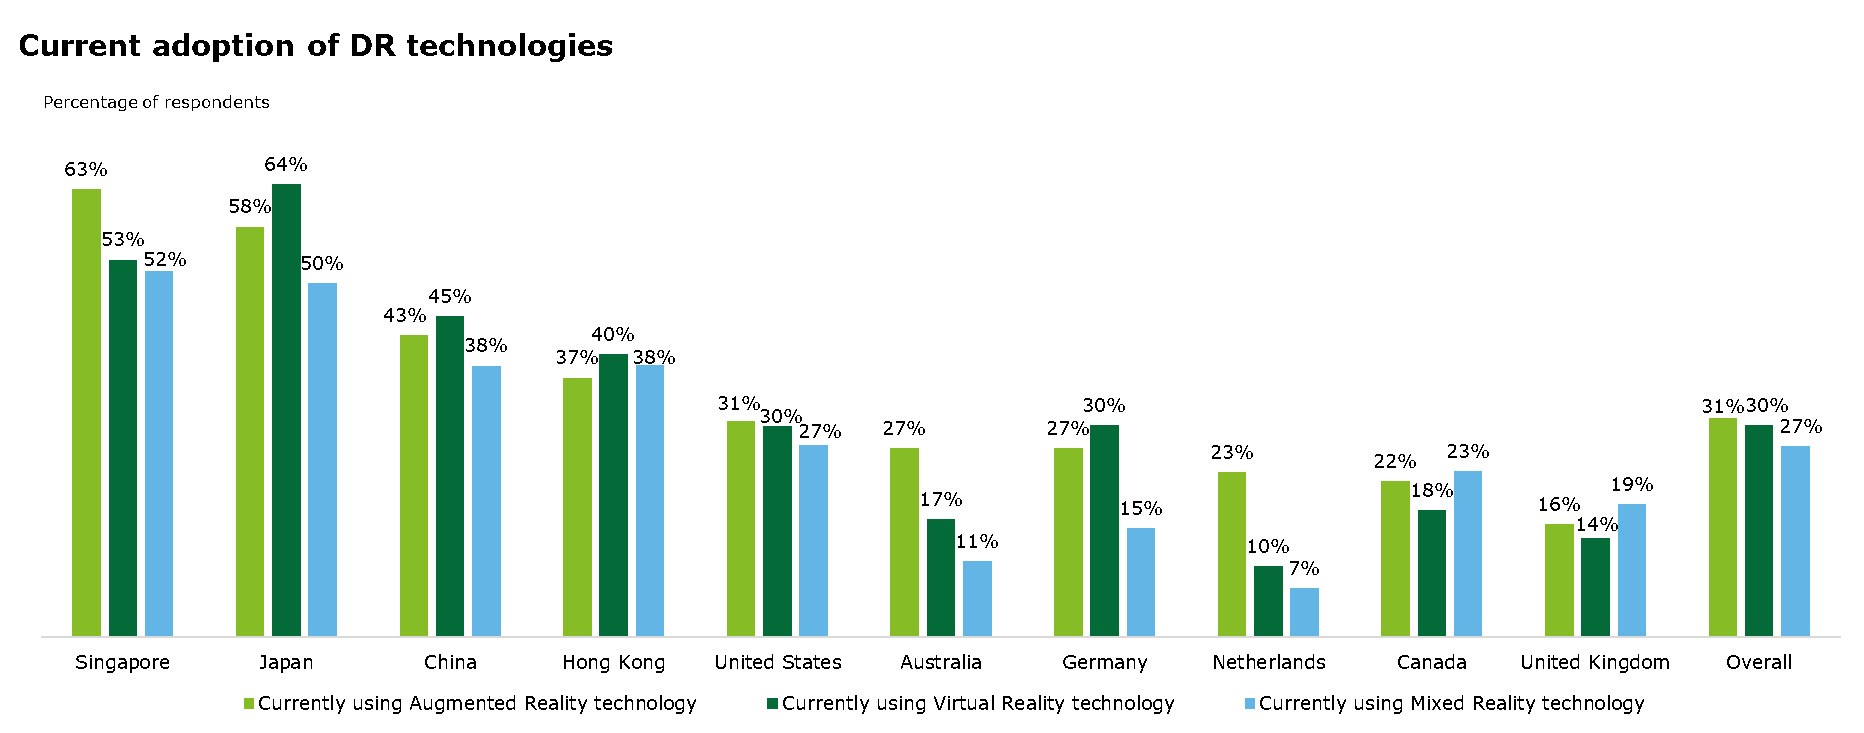 Source: Deloitte Center for Financial Services analysis